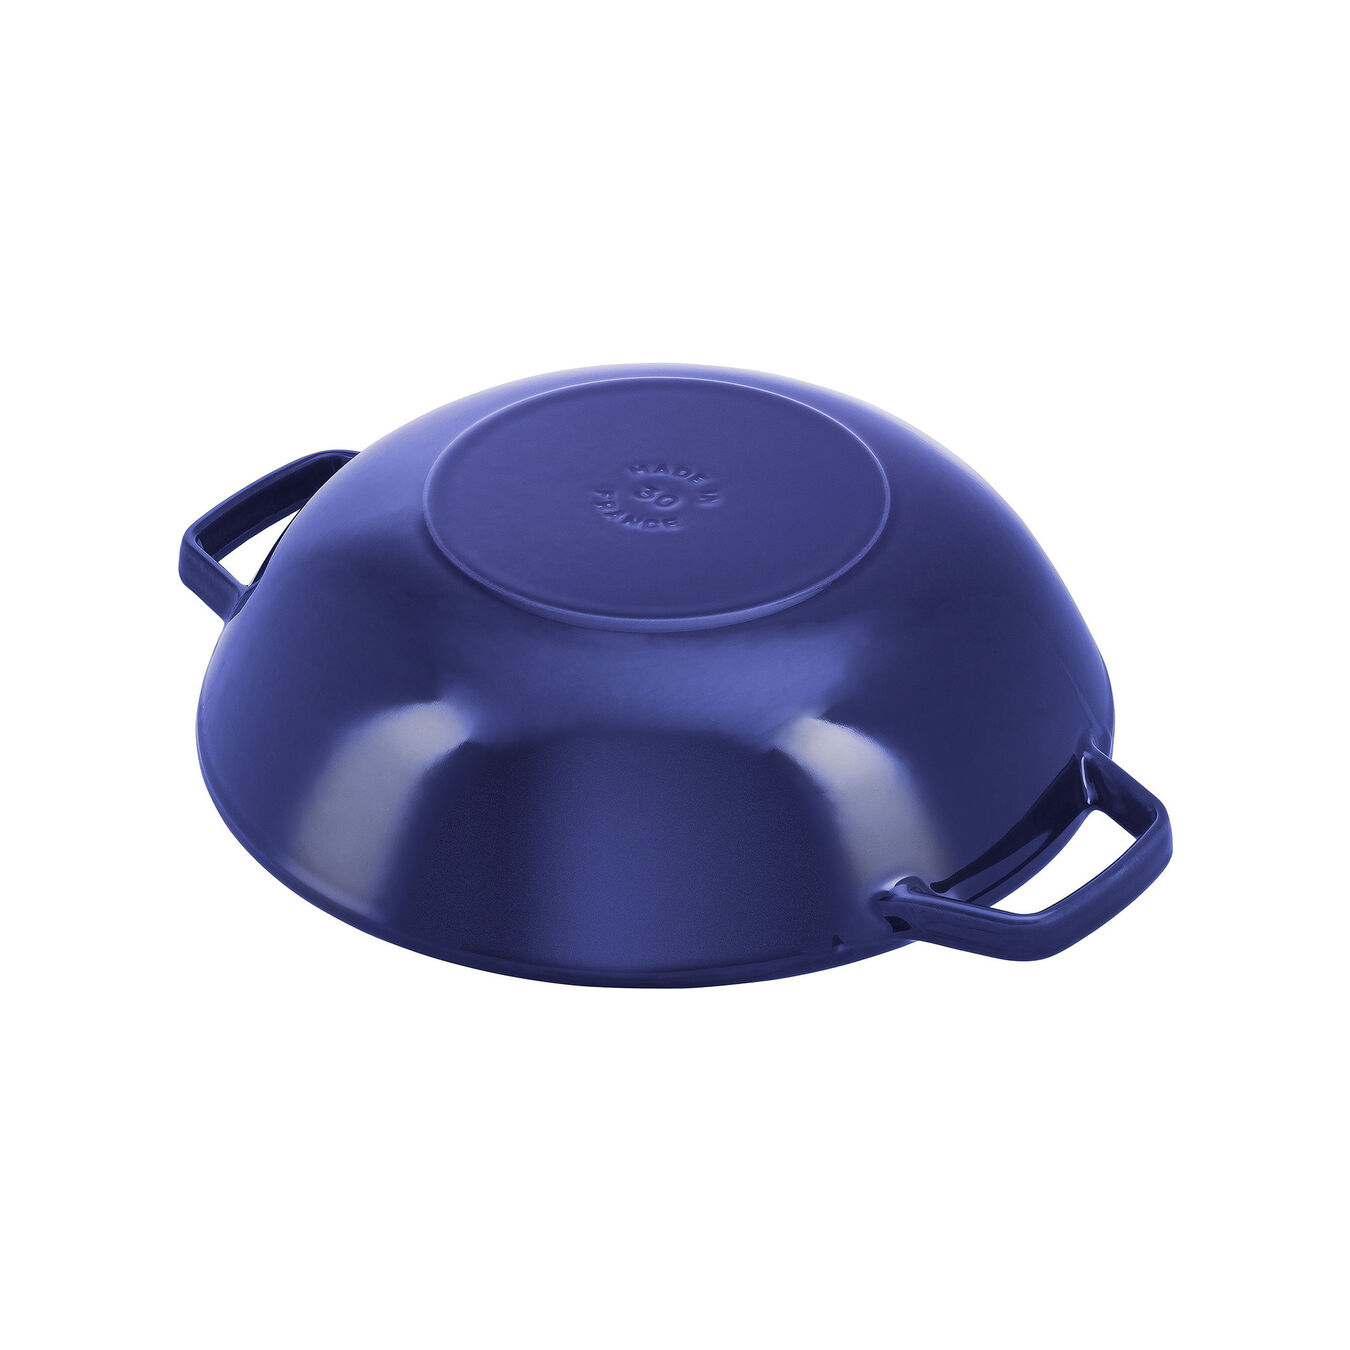 30 cm Cast iron Wok with glass lid, Dark-Blue,,large 4